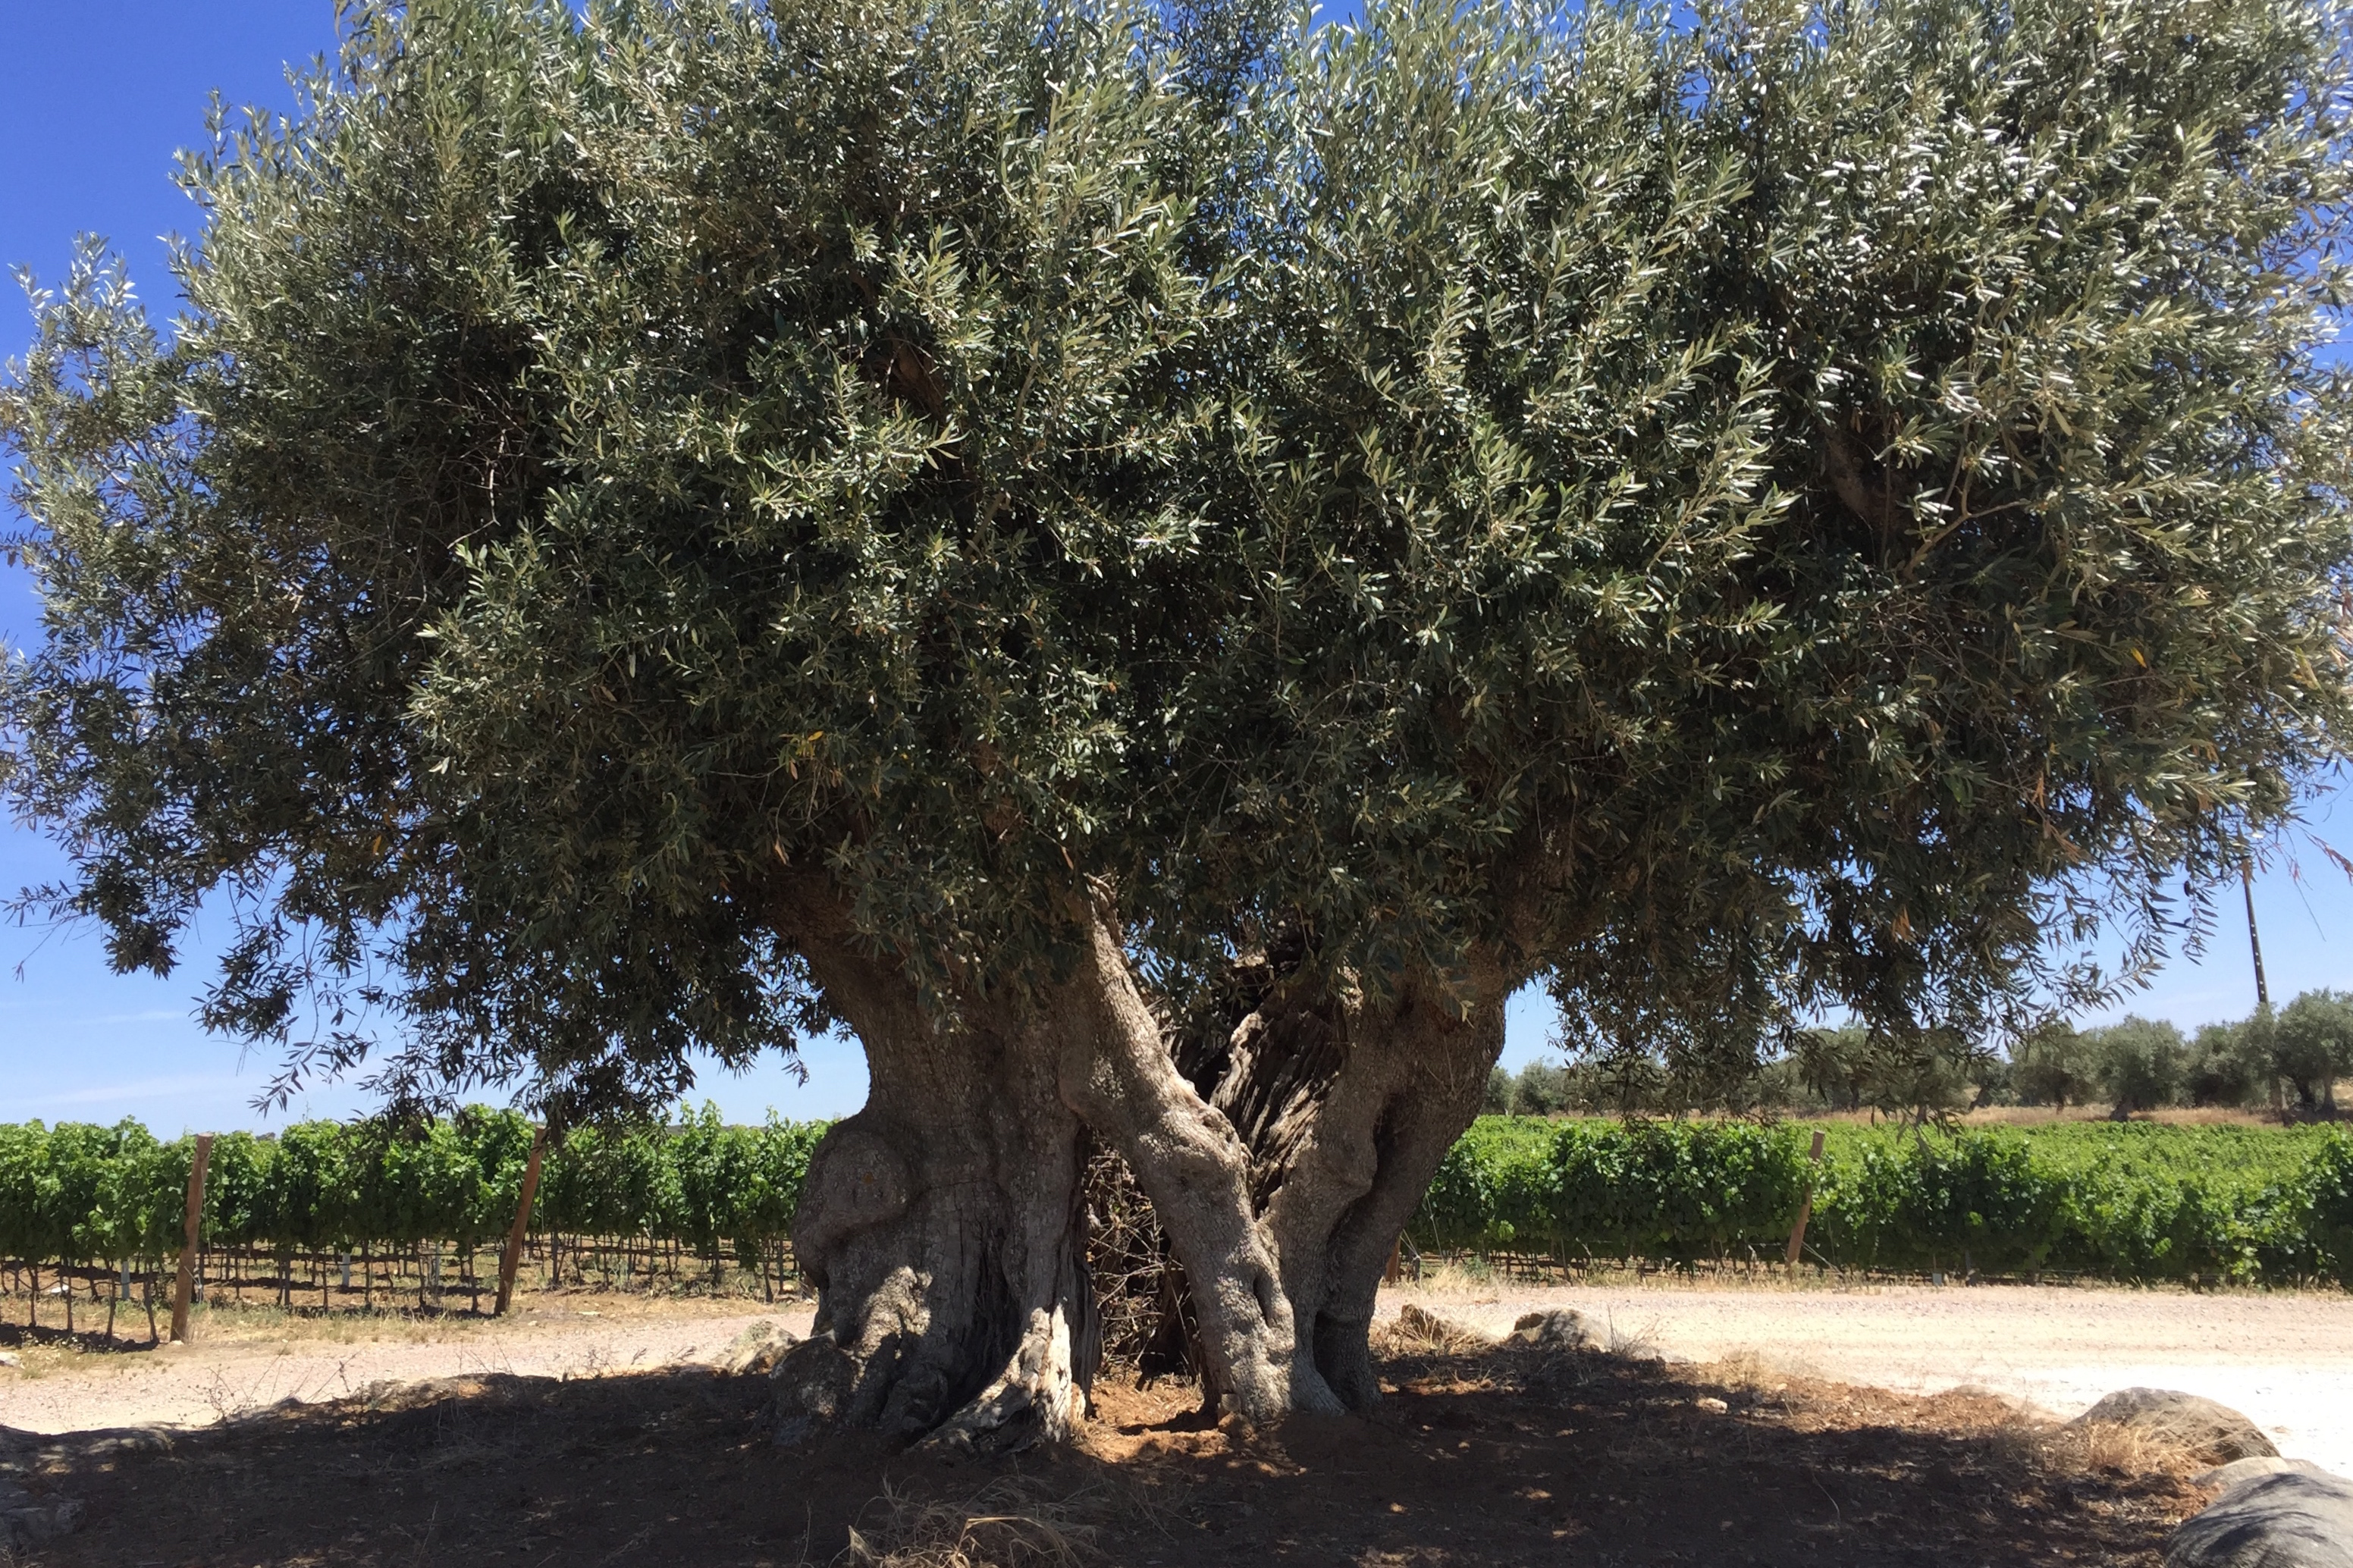 Herdade do Freixo Olive Tree 2000 years old